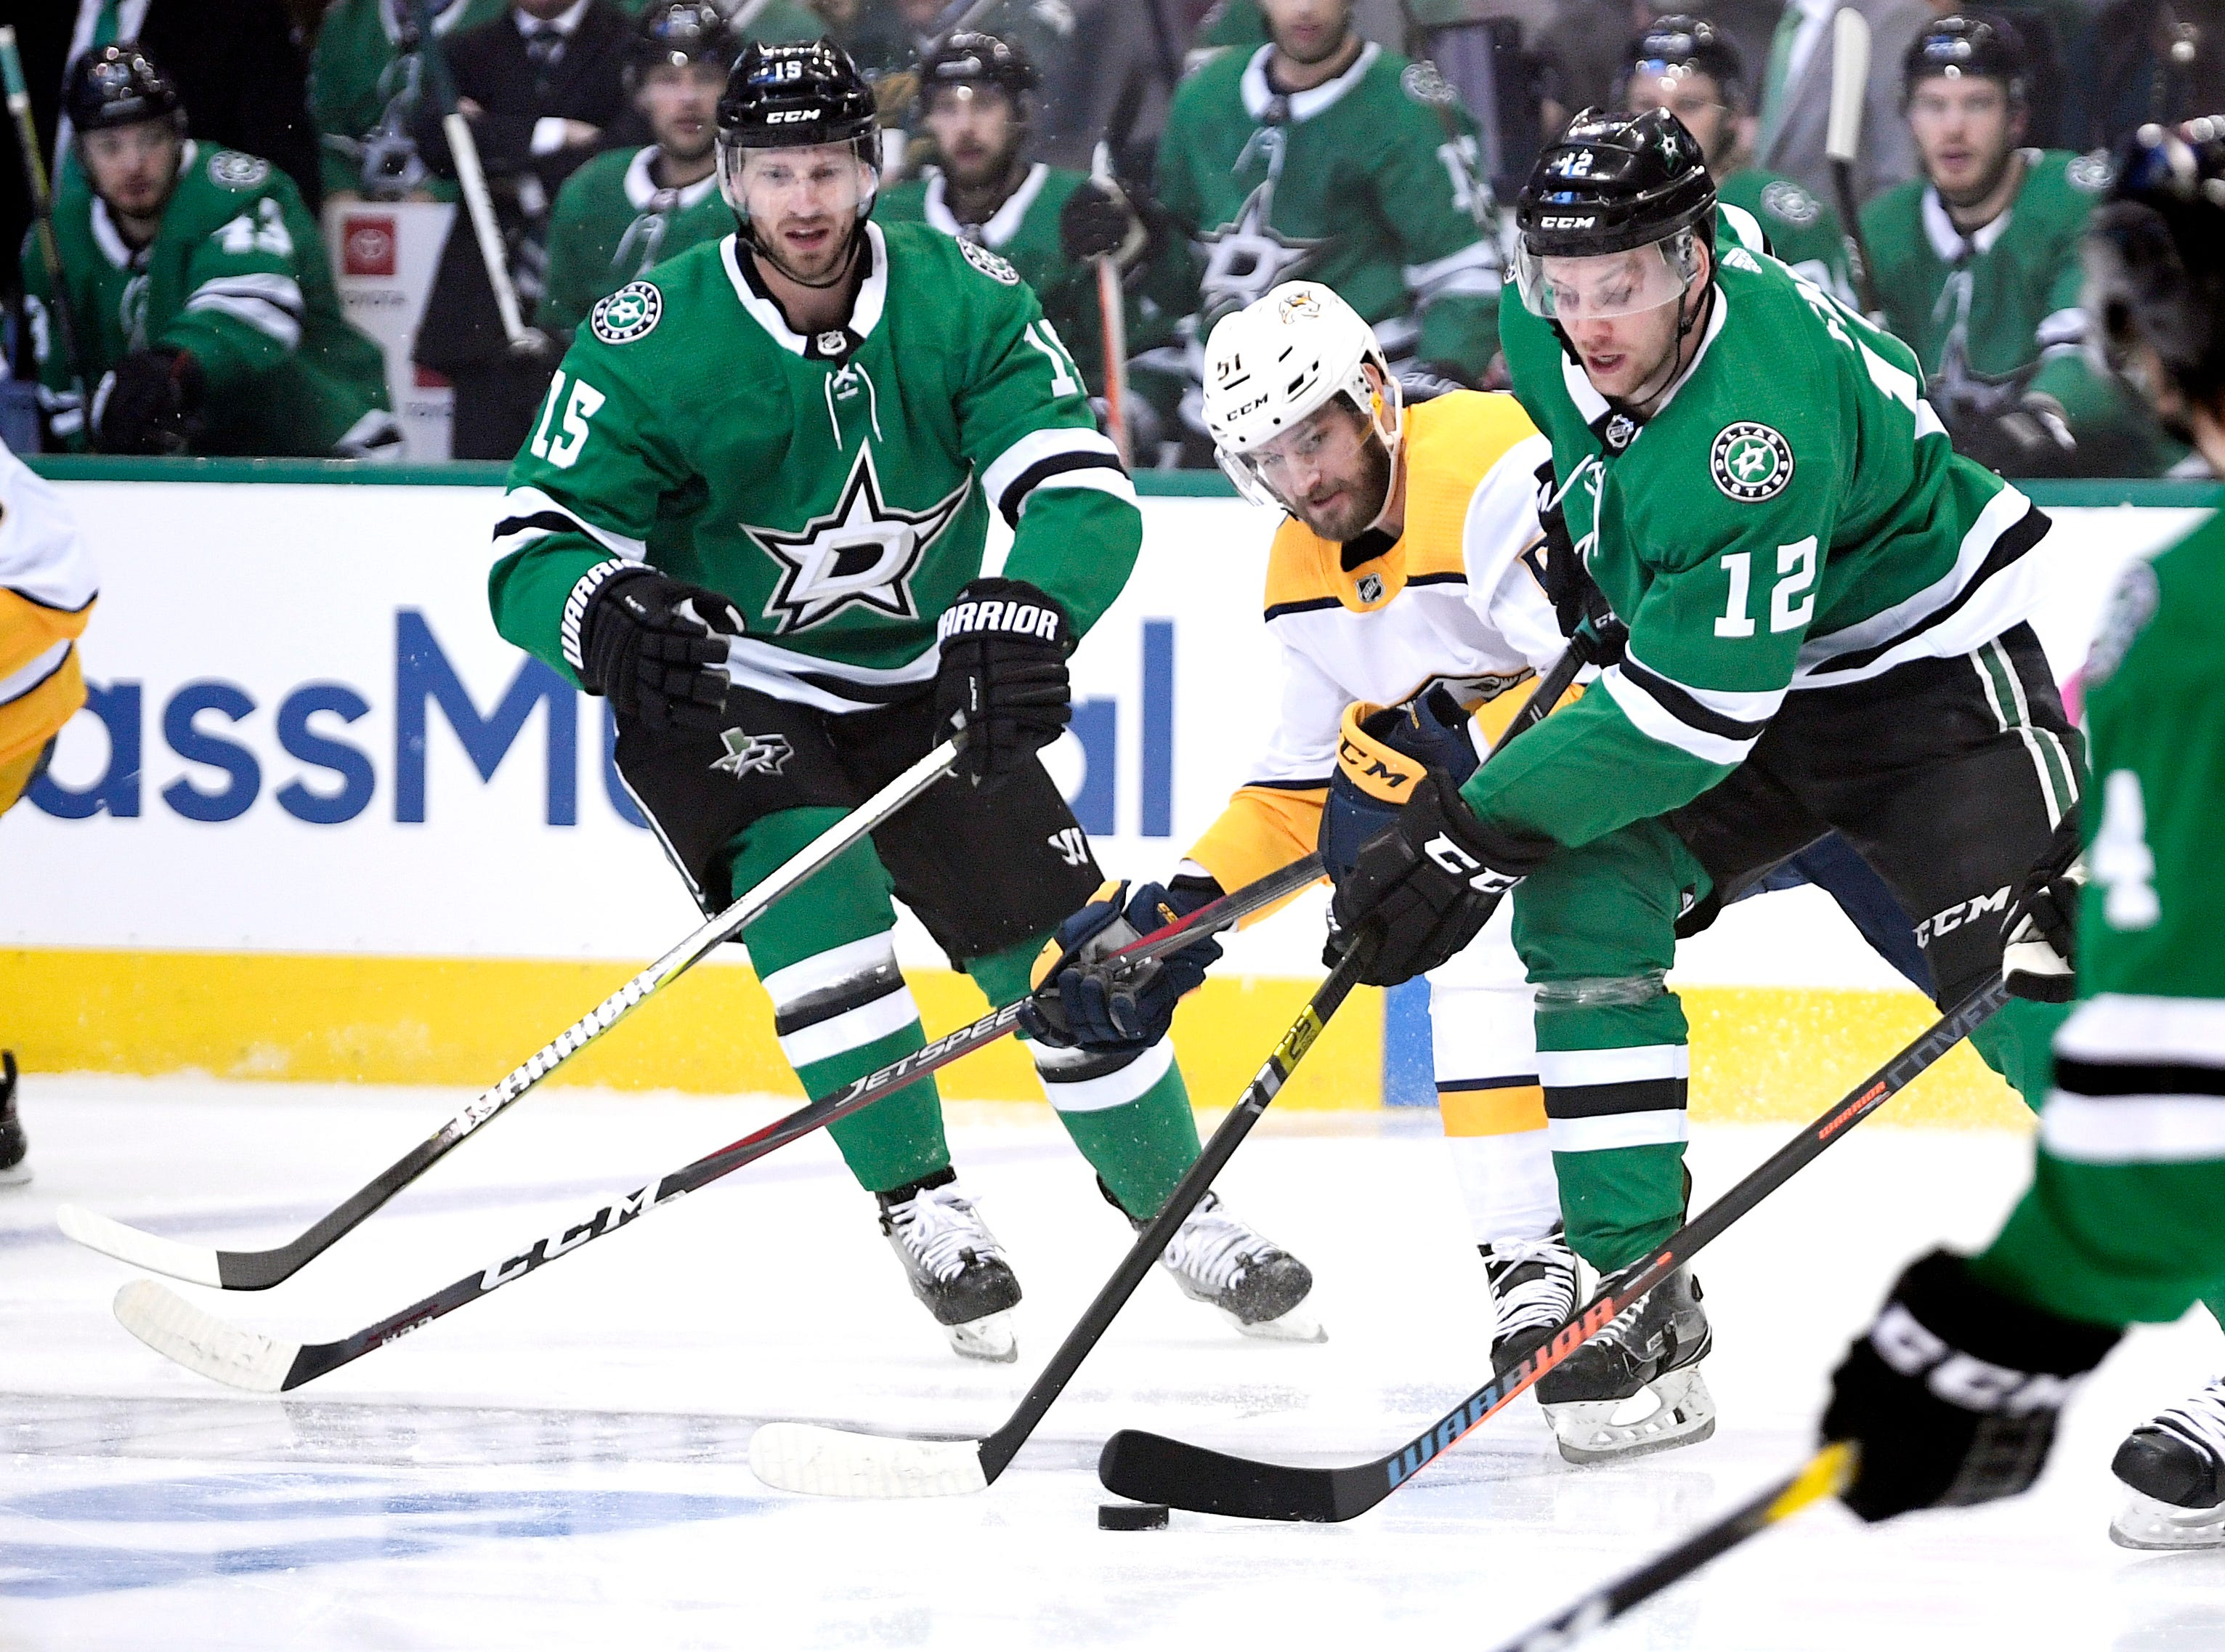 Dallas Stars center Radek Faksa (12) moves the puck defended by Nashville Predators left wing Austin Watson (51) during the first period of the divisional semifinal game at the American Airlines Center in Dallas, Texas., Monday, April 15, 2019.